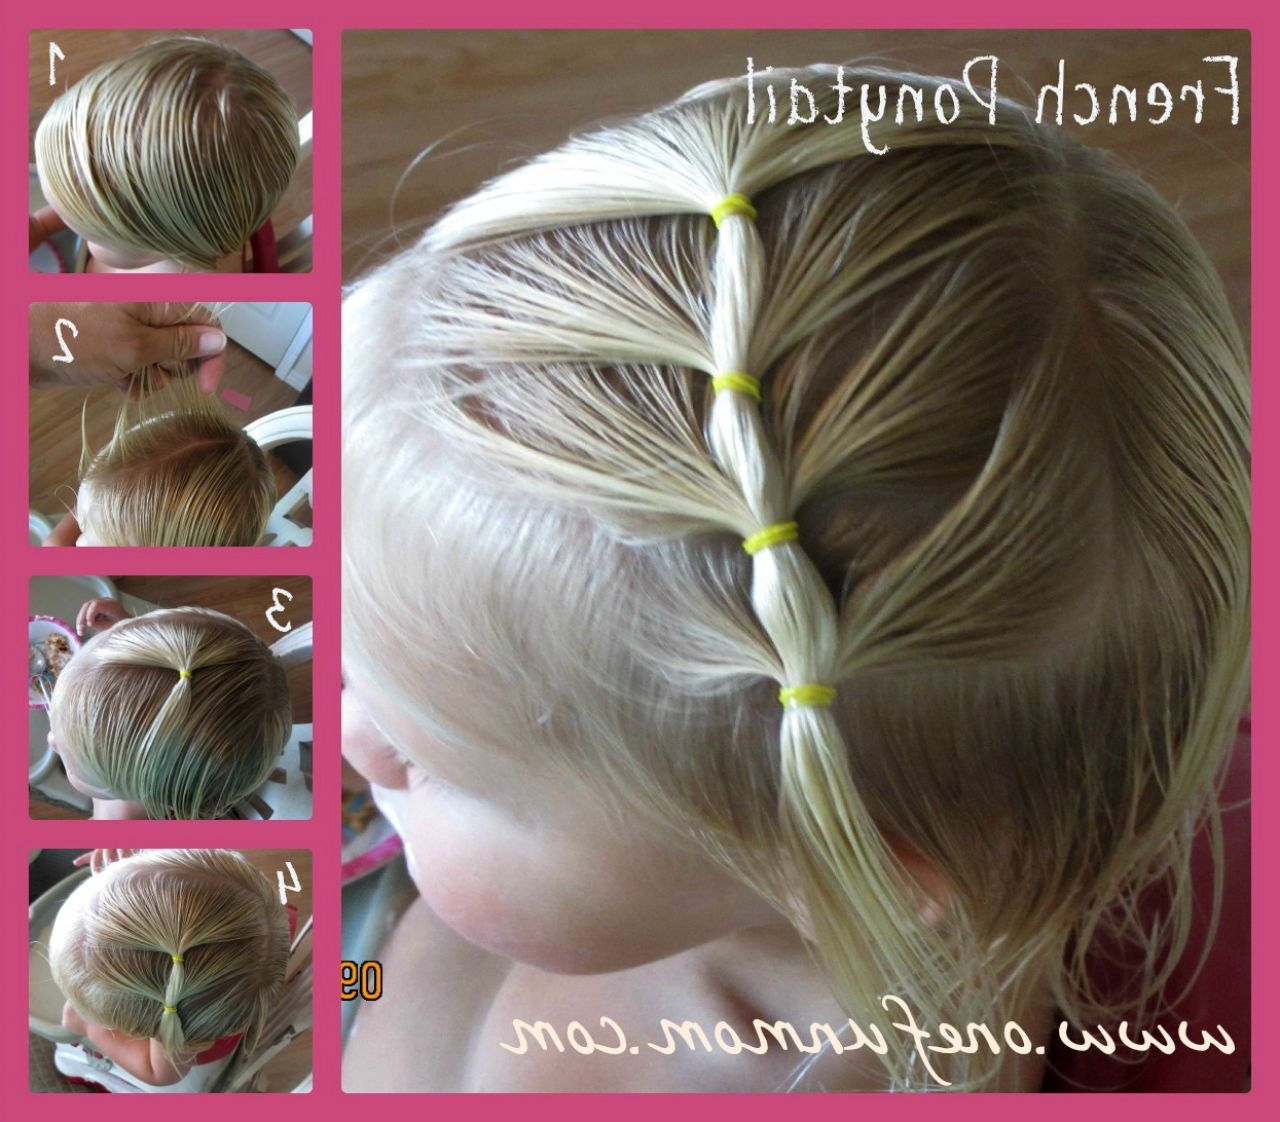 Toddler Girl Hairstyles For Short Hair Jente Frisyre Frisyrer